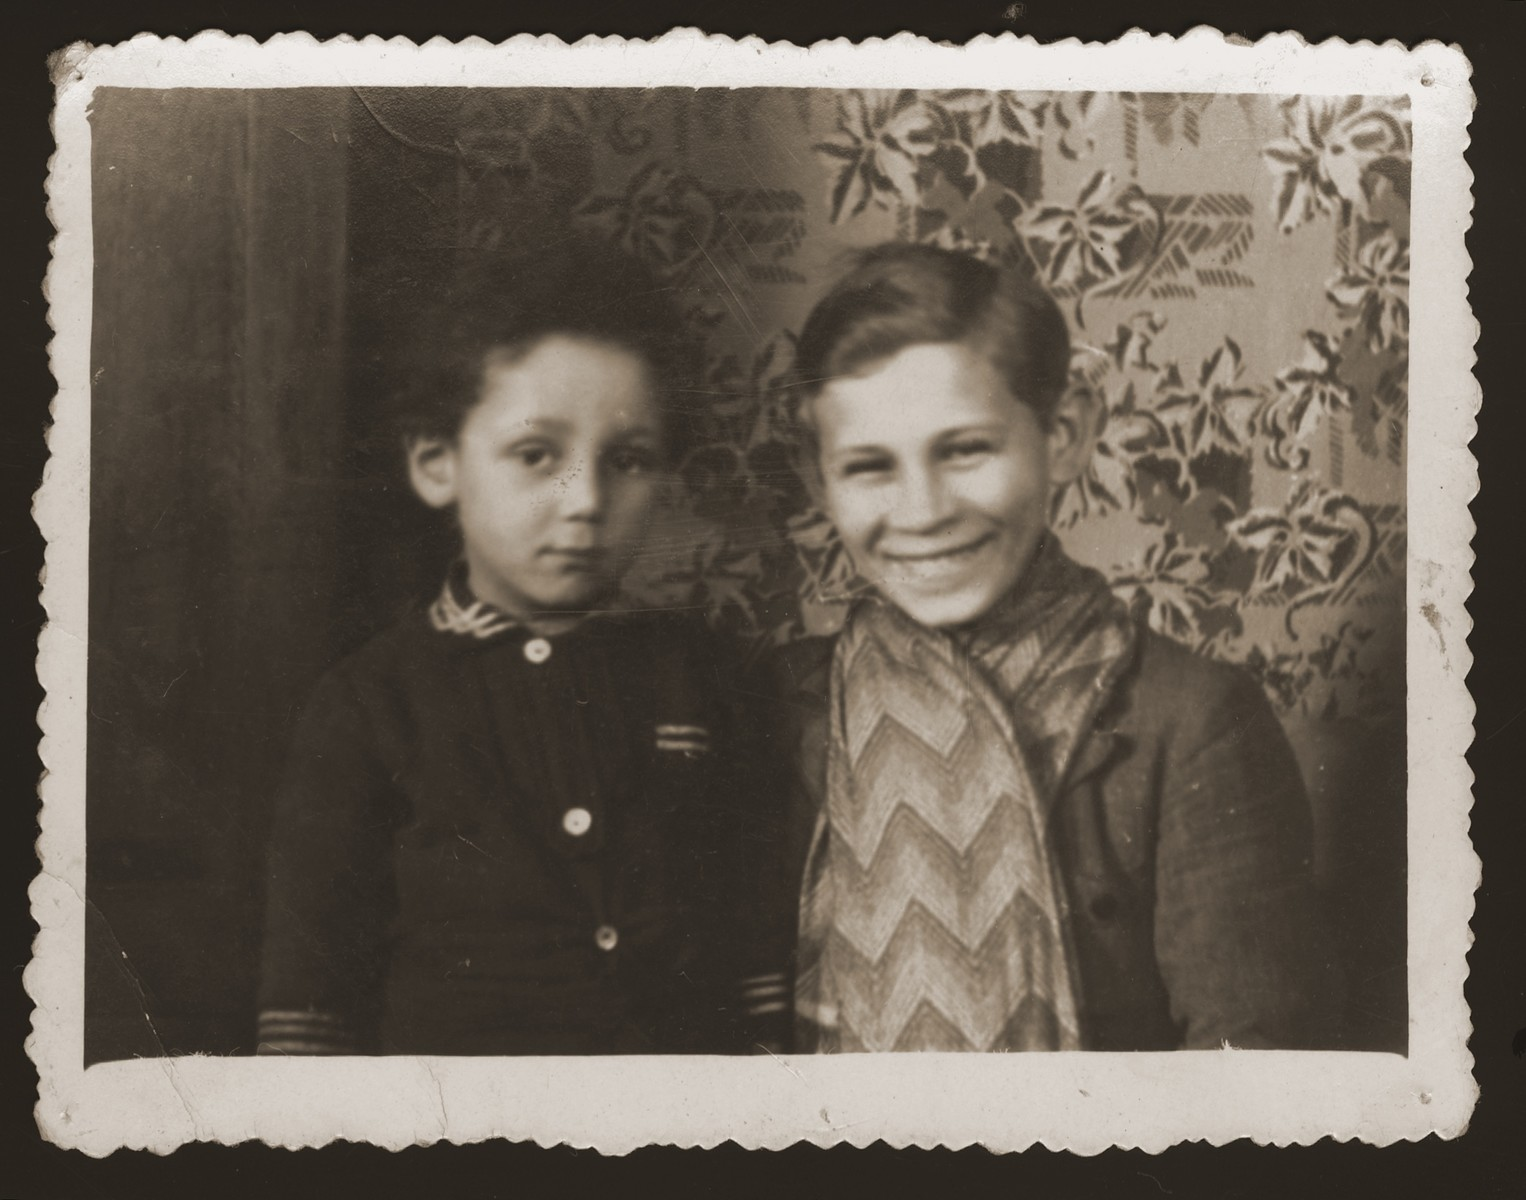 Portrait of two young Jewish boys in Chelm.  Pictured are Mojszale Nissenbaum (left) and ? Schumacher, cousins of Estera Ajzen, who were later killed in Chelmno.